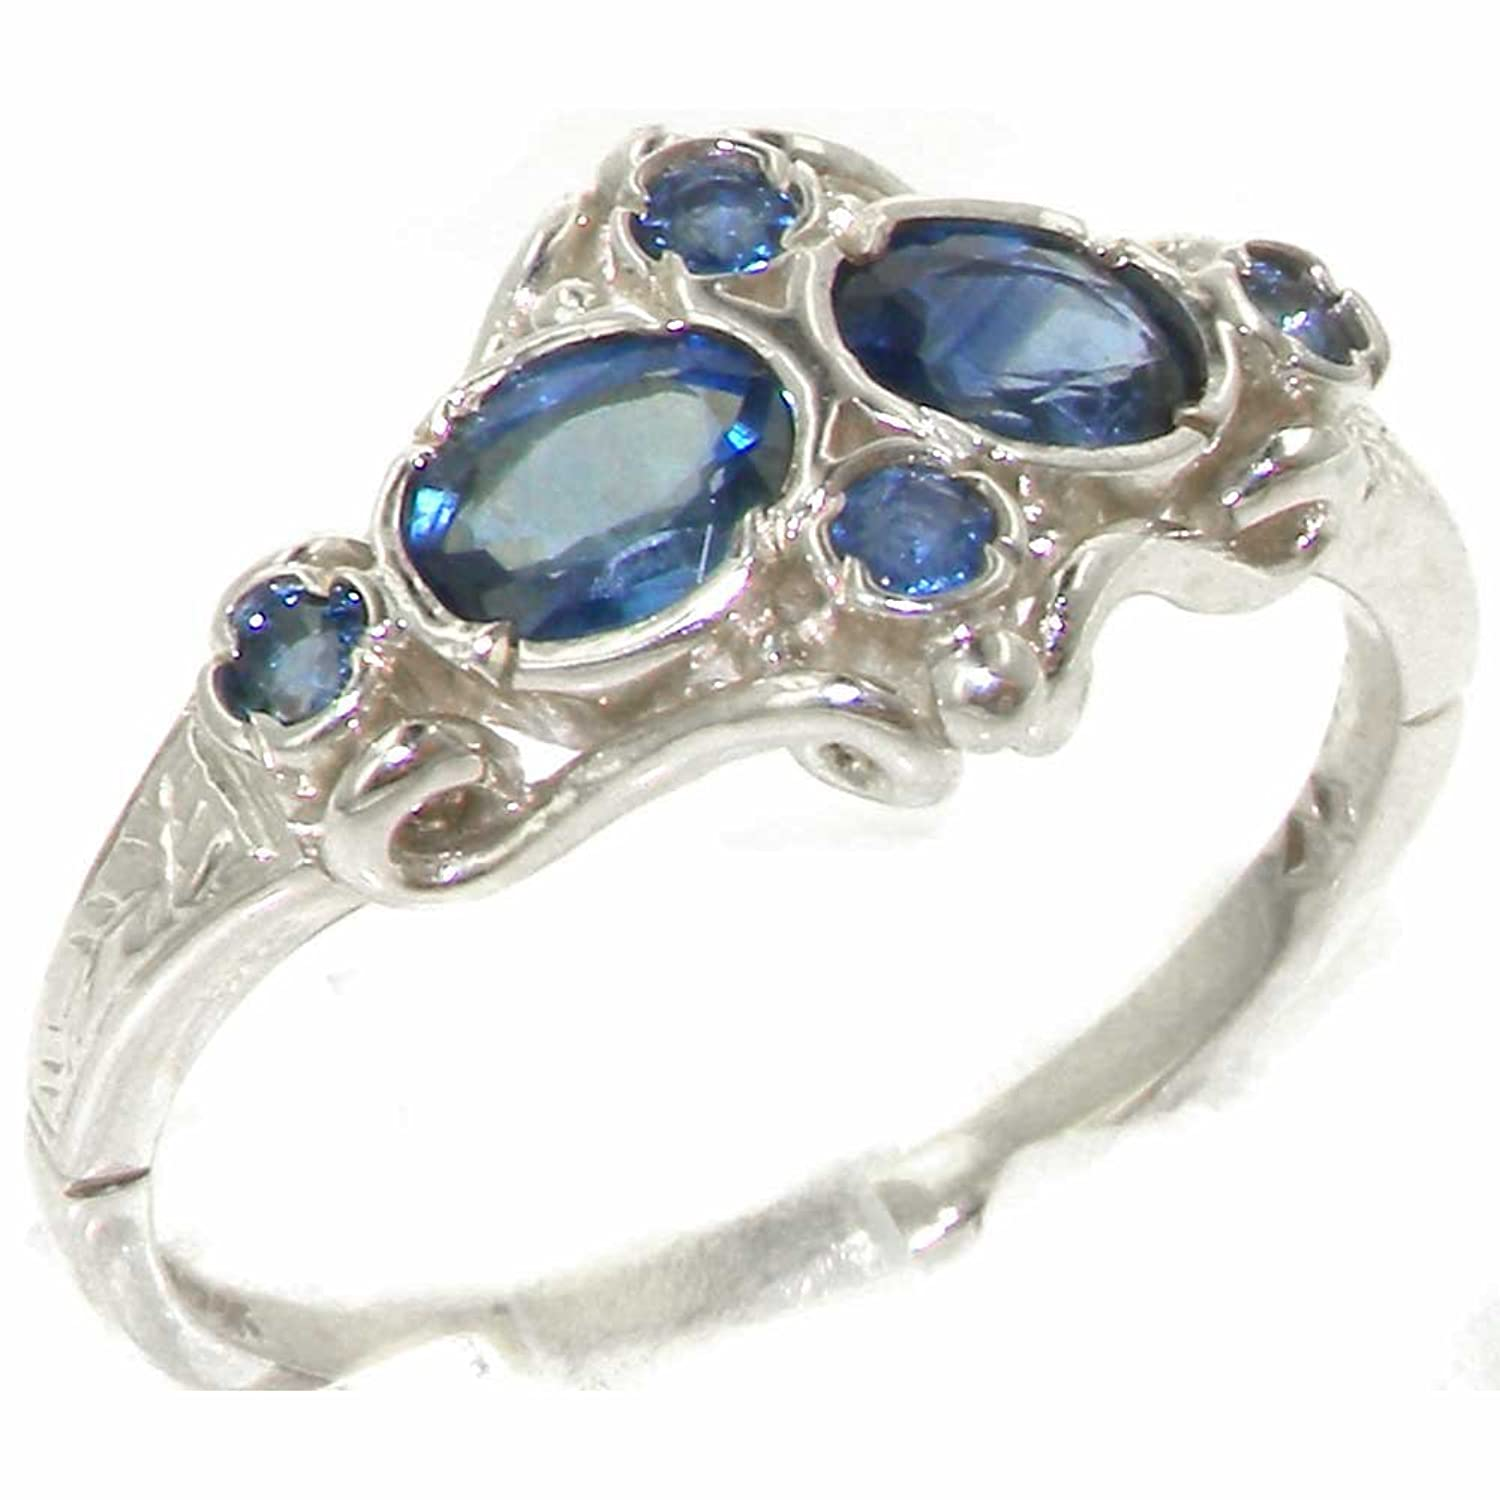 india sapphire untreated store buy sri online at cts in low lanka real natural amazon dp prices unheated blue jewellery